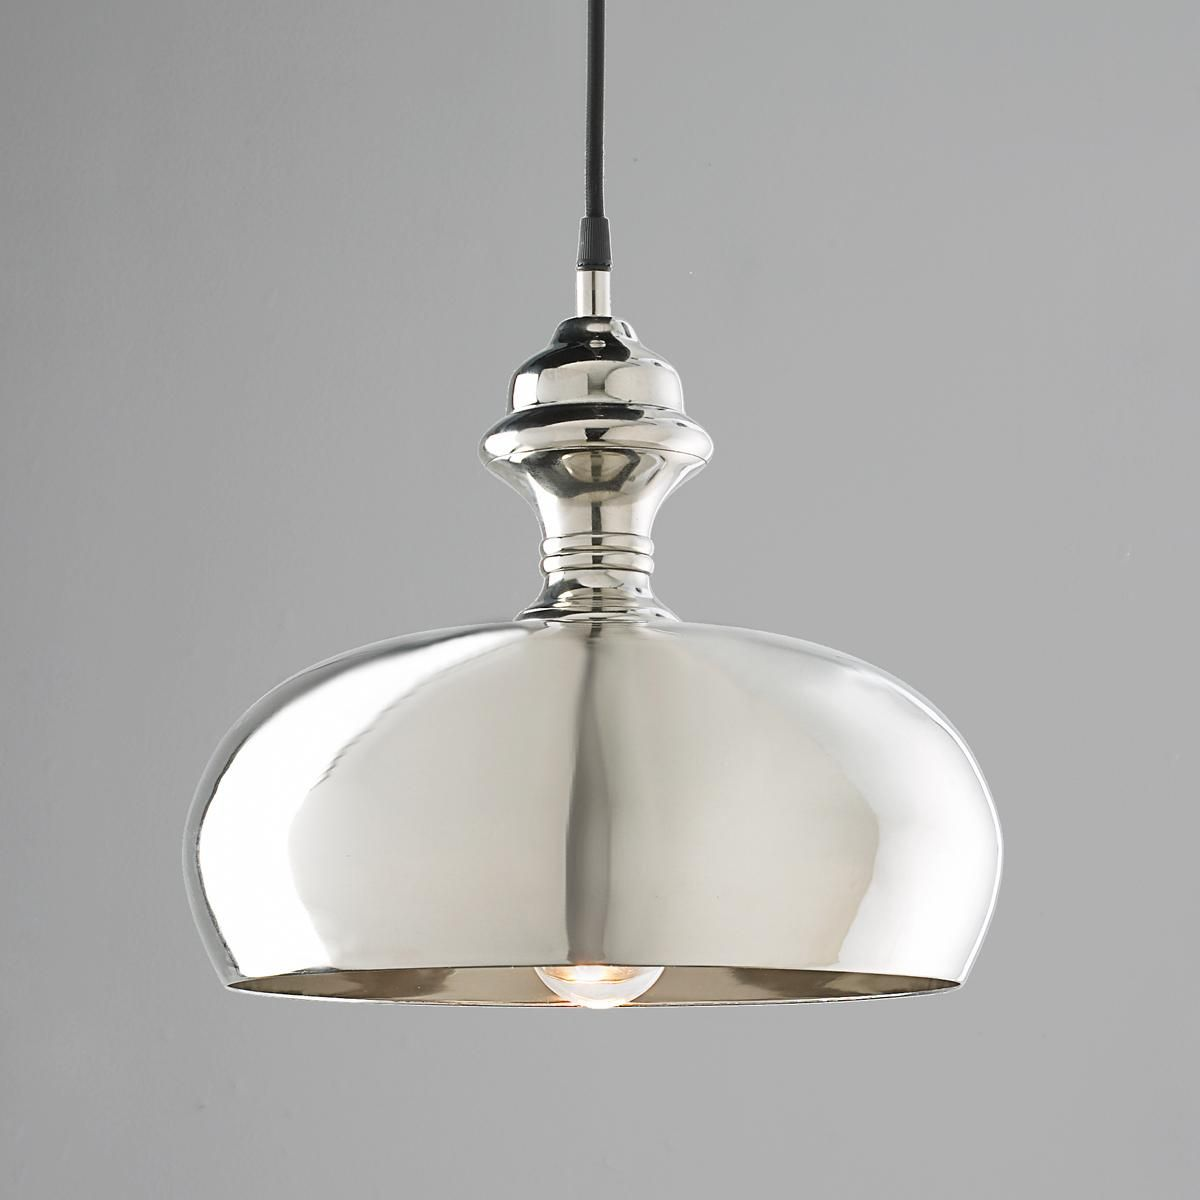 Kitchen Pendants Silver Onion Dome Pendant Light From Shades Of Light 4